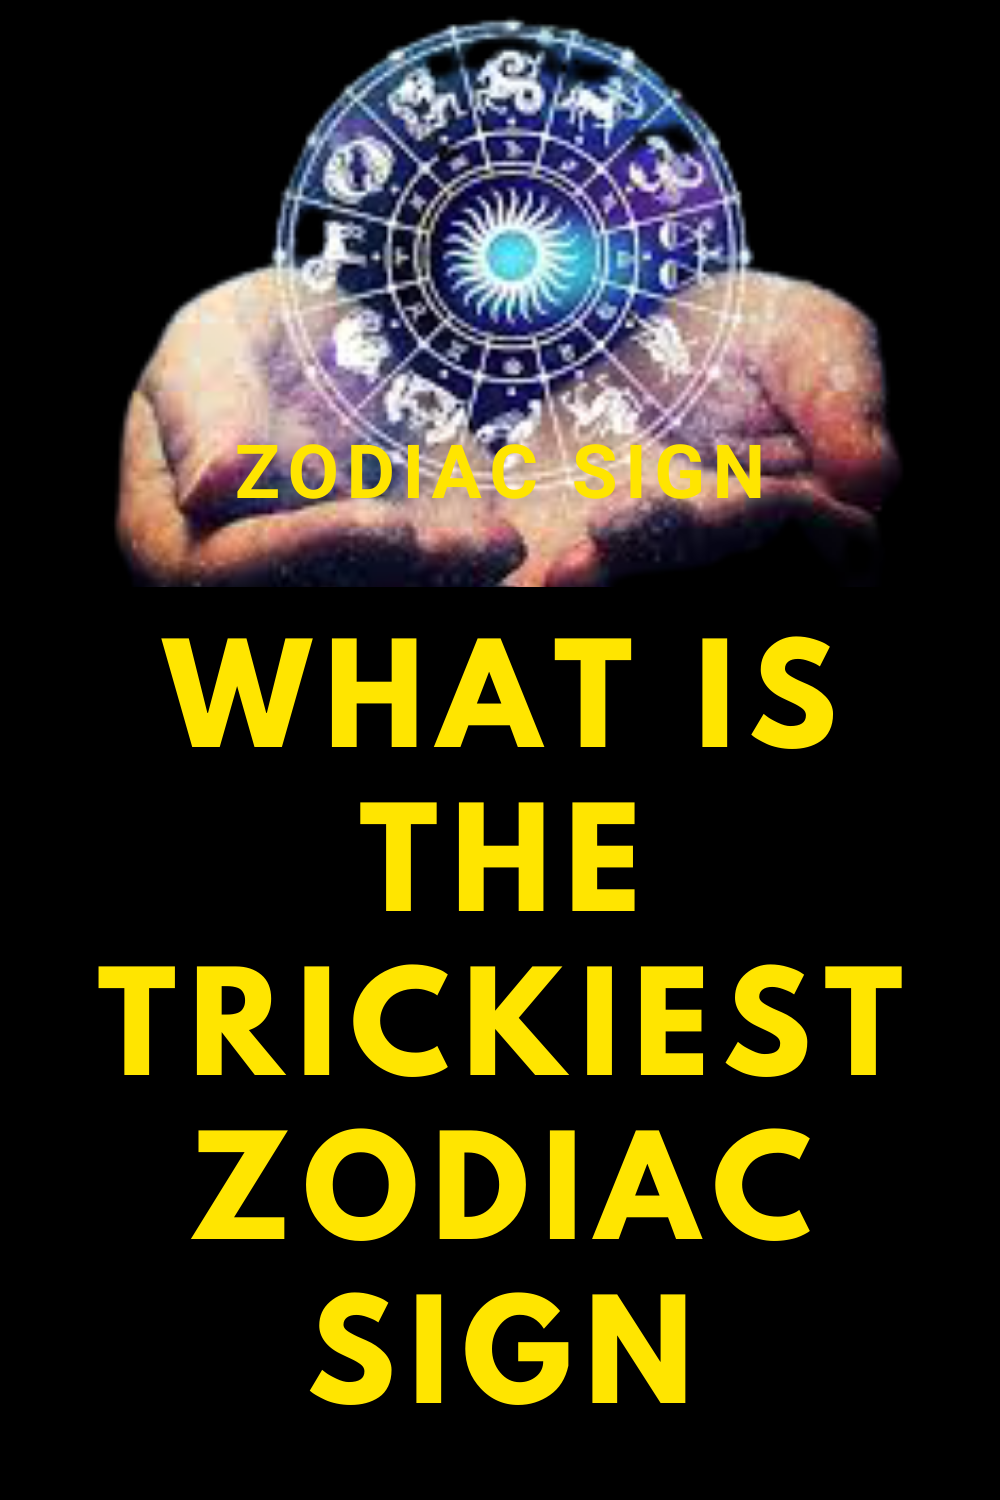 What is the trickiest zodiac sign